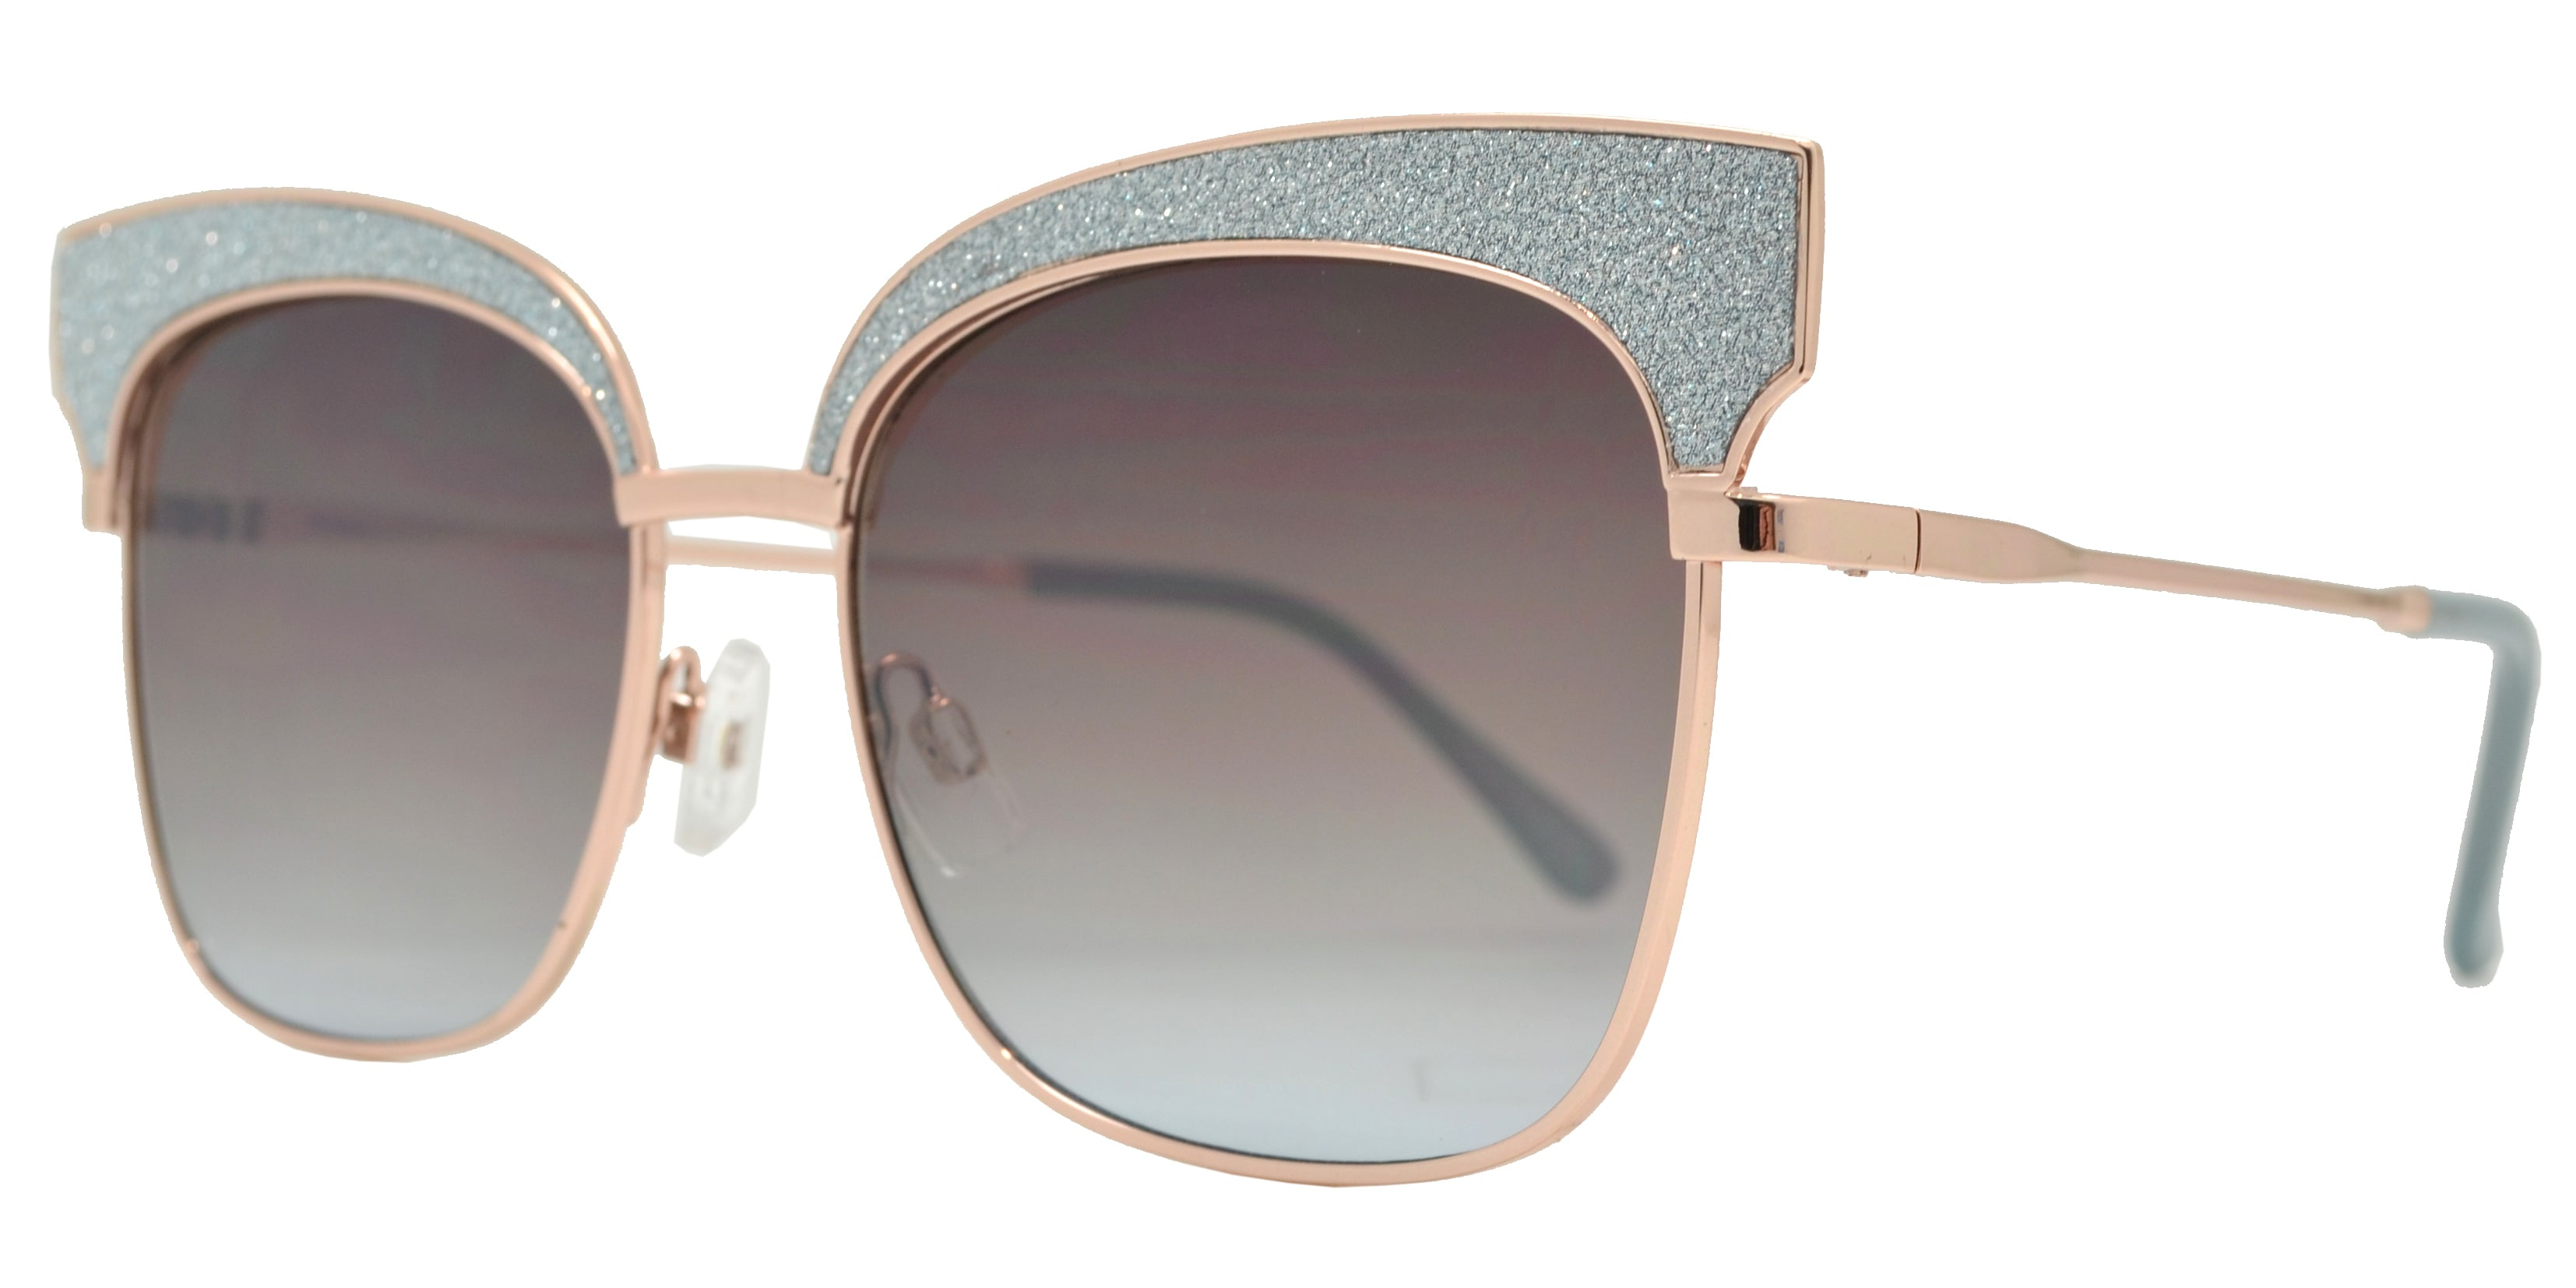 Dynasol Eyewear - Wholesale Sunglasses - FC 6408 - Women's Slim Square with Glitter Accent Sunglasses - sunglasses